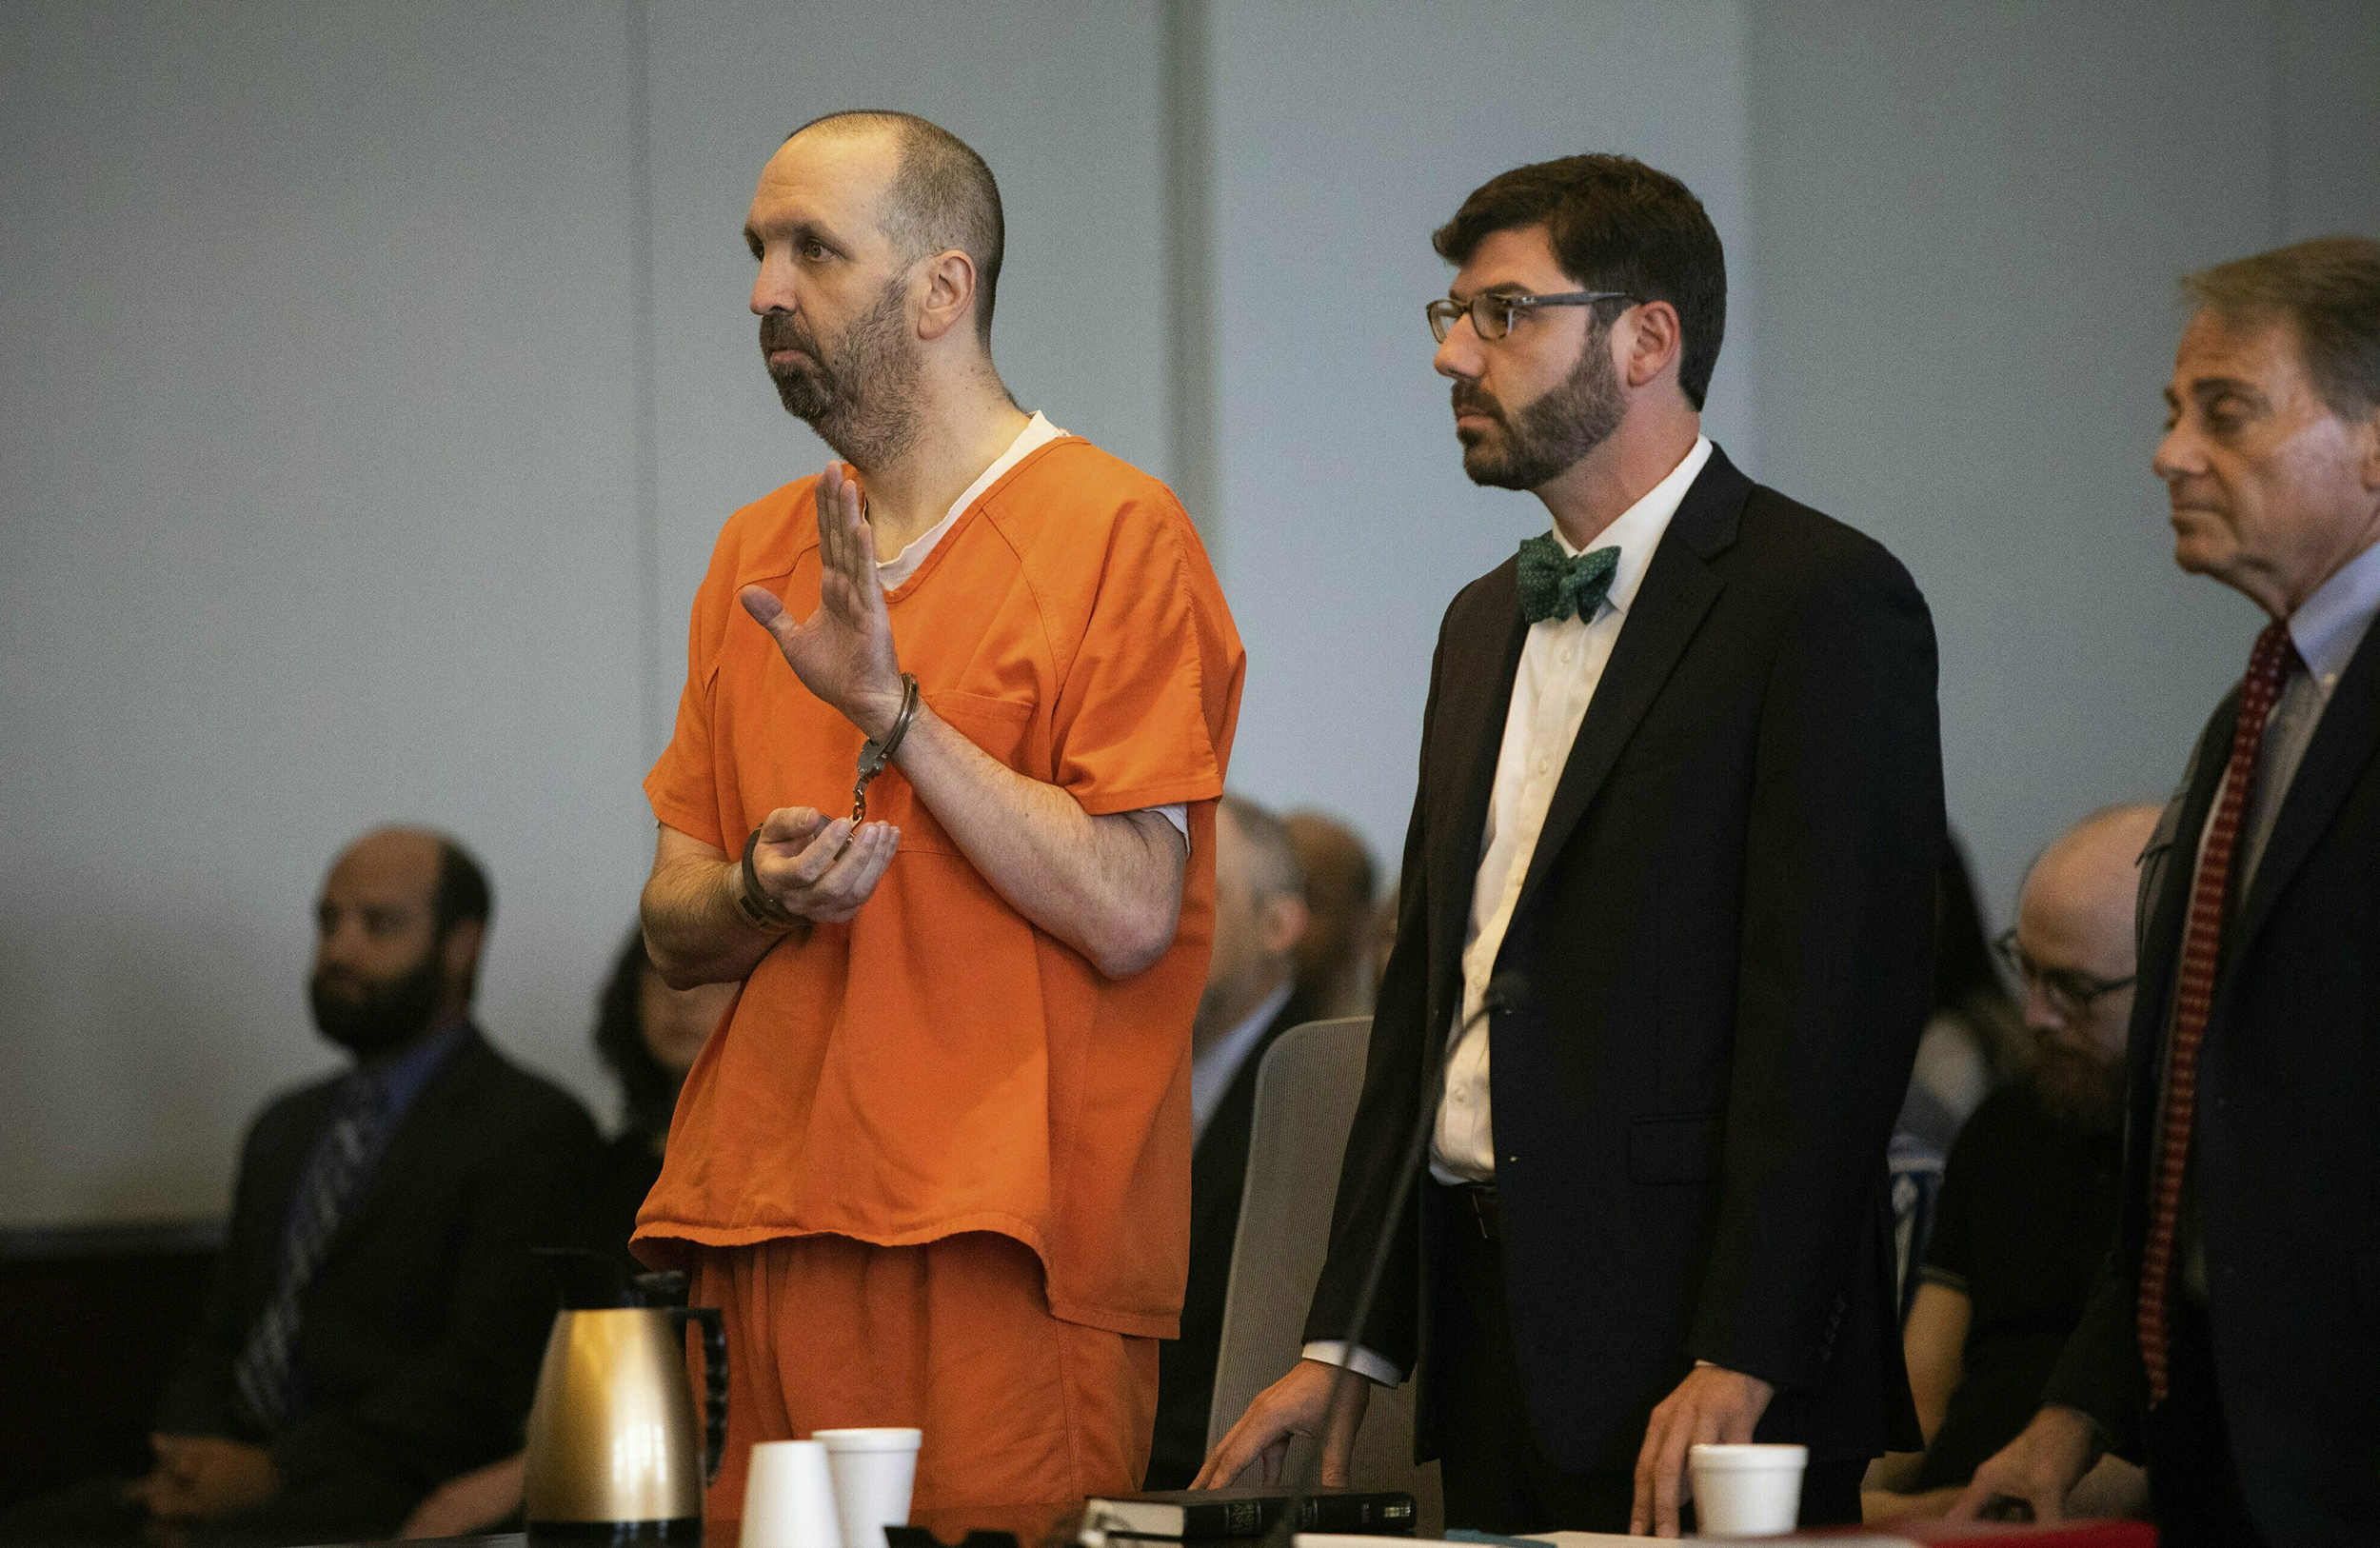 Man-sentenced-to-three-life-terms-without-parole-for-killing-three-Muslims